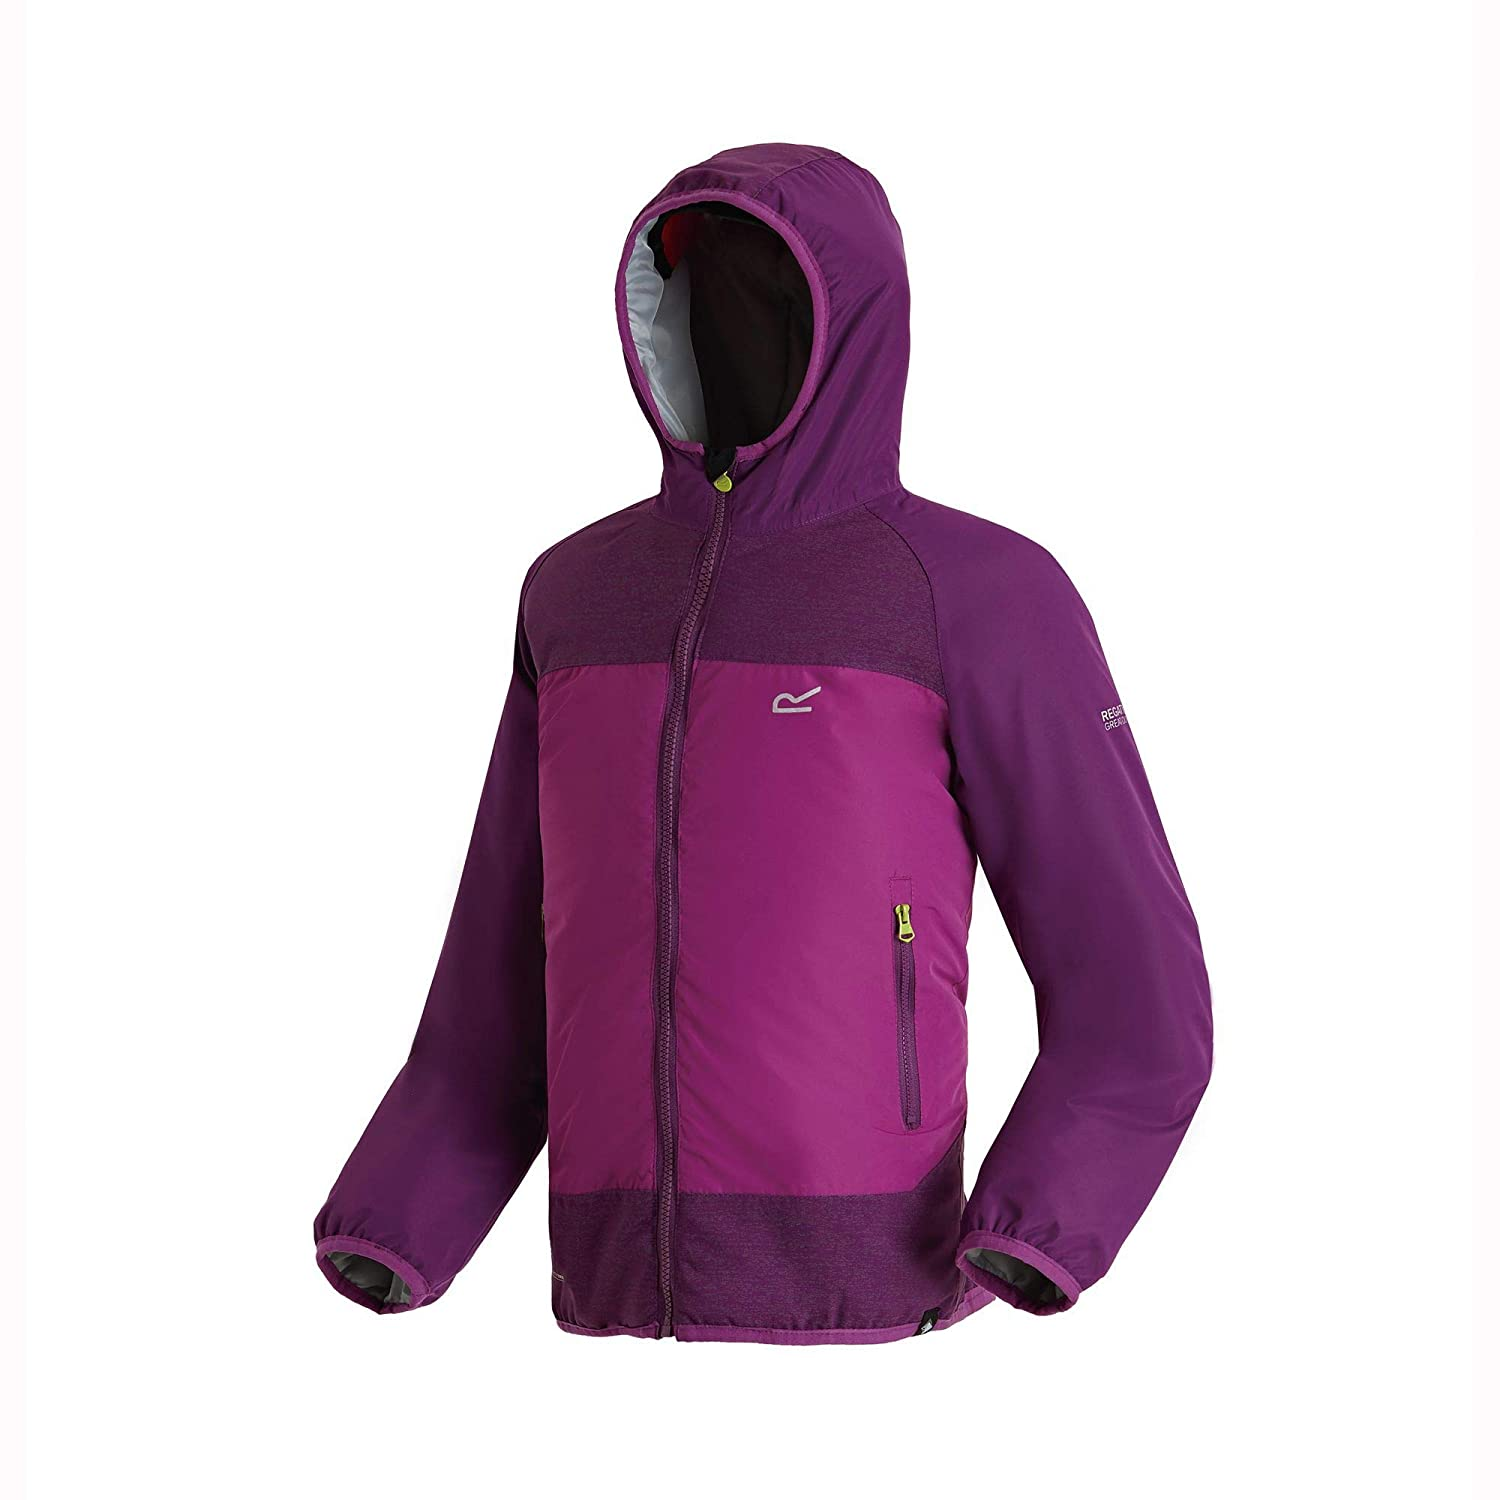 Regatta Volcanics II Waterproof and Breathable Lightweight Insulated Reflective Hooded Veste Enfant RKP197